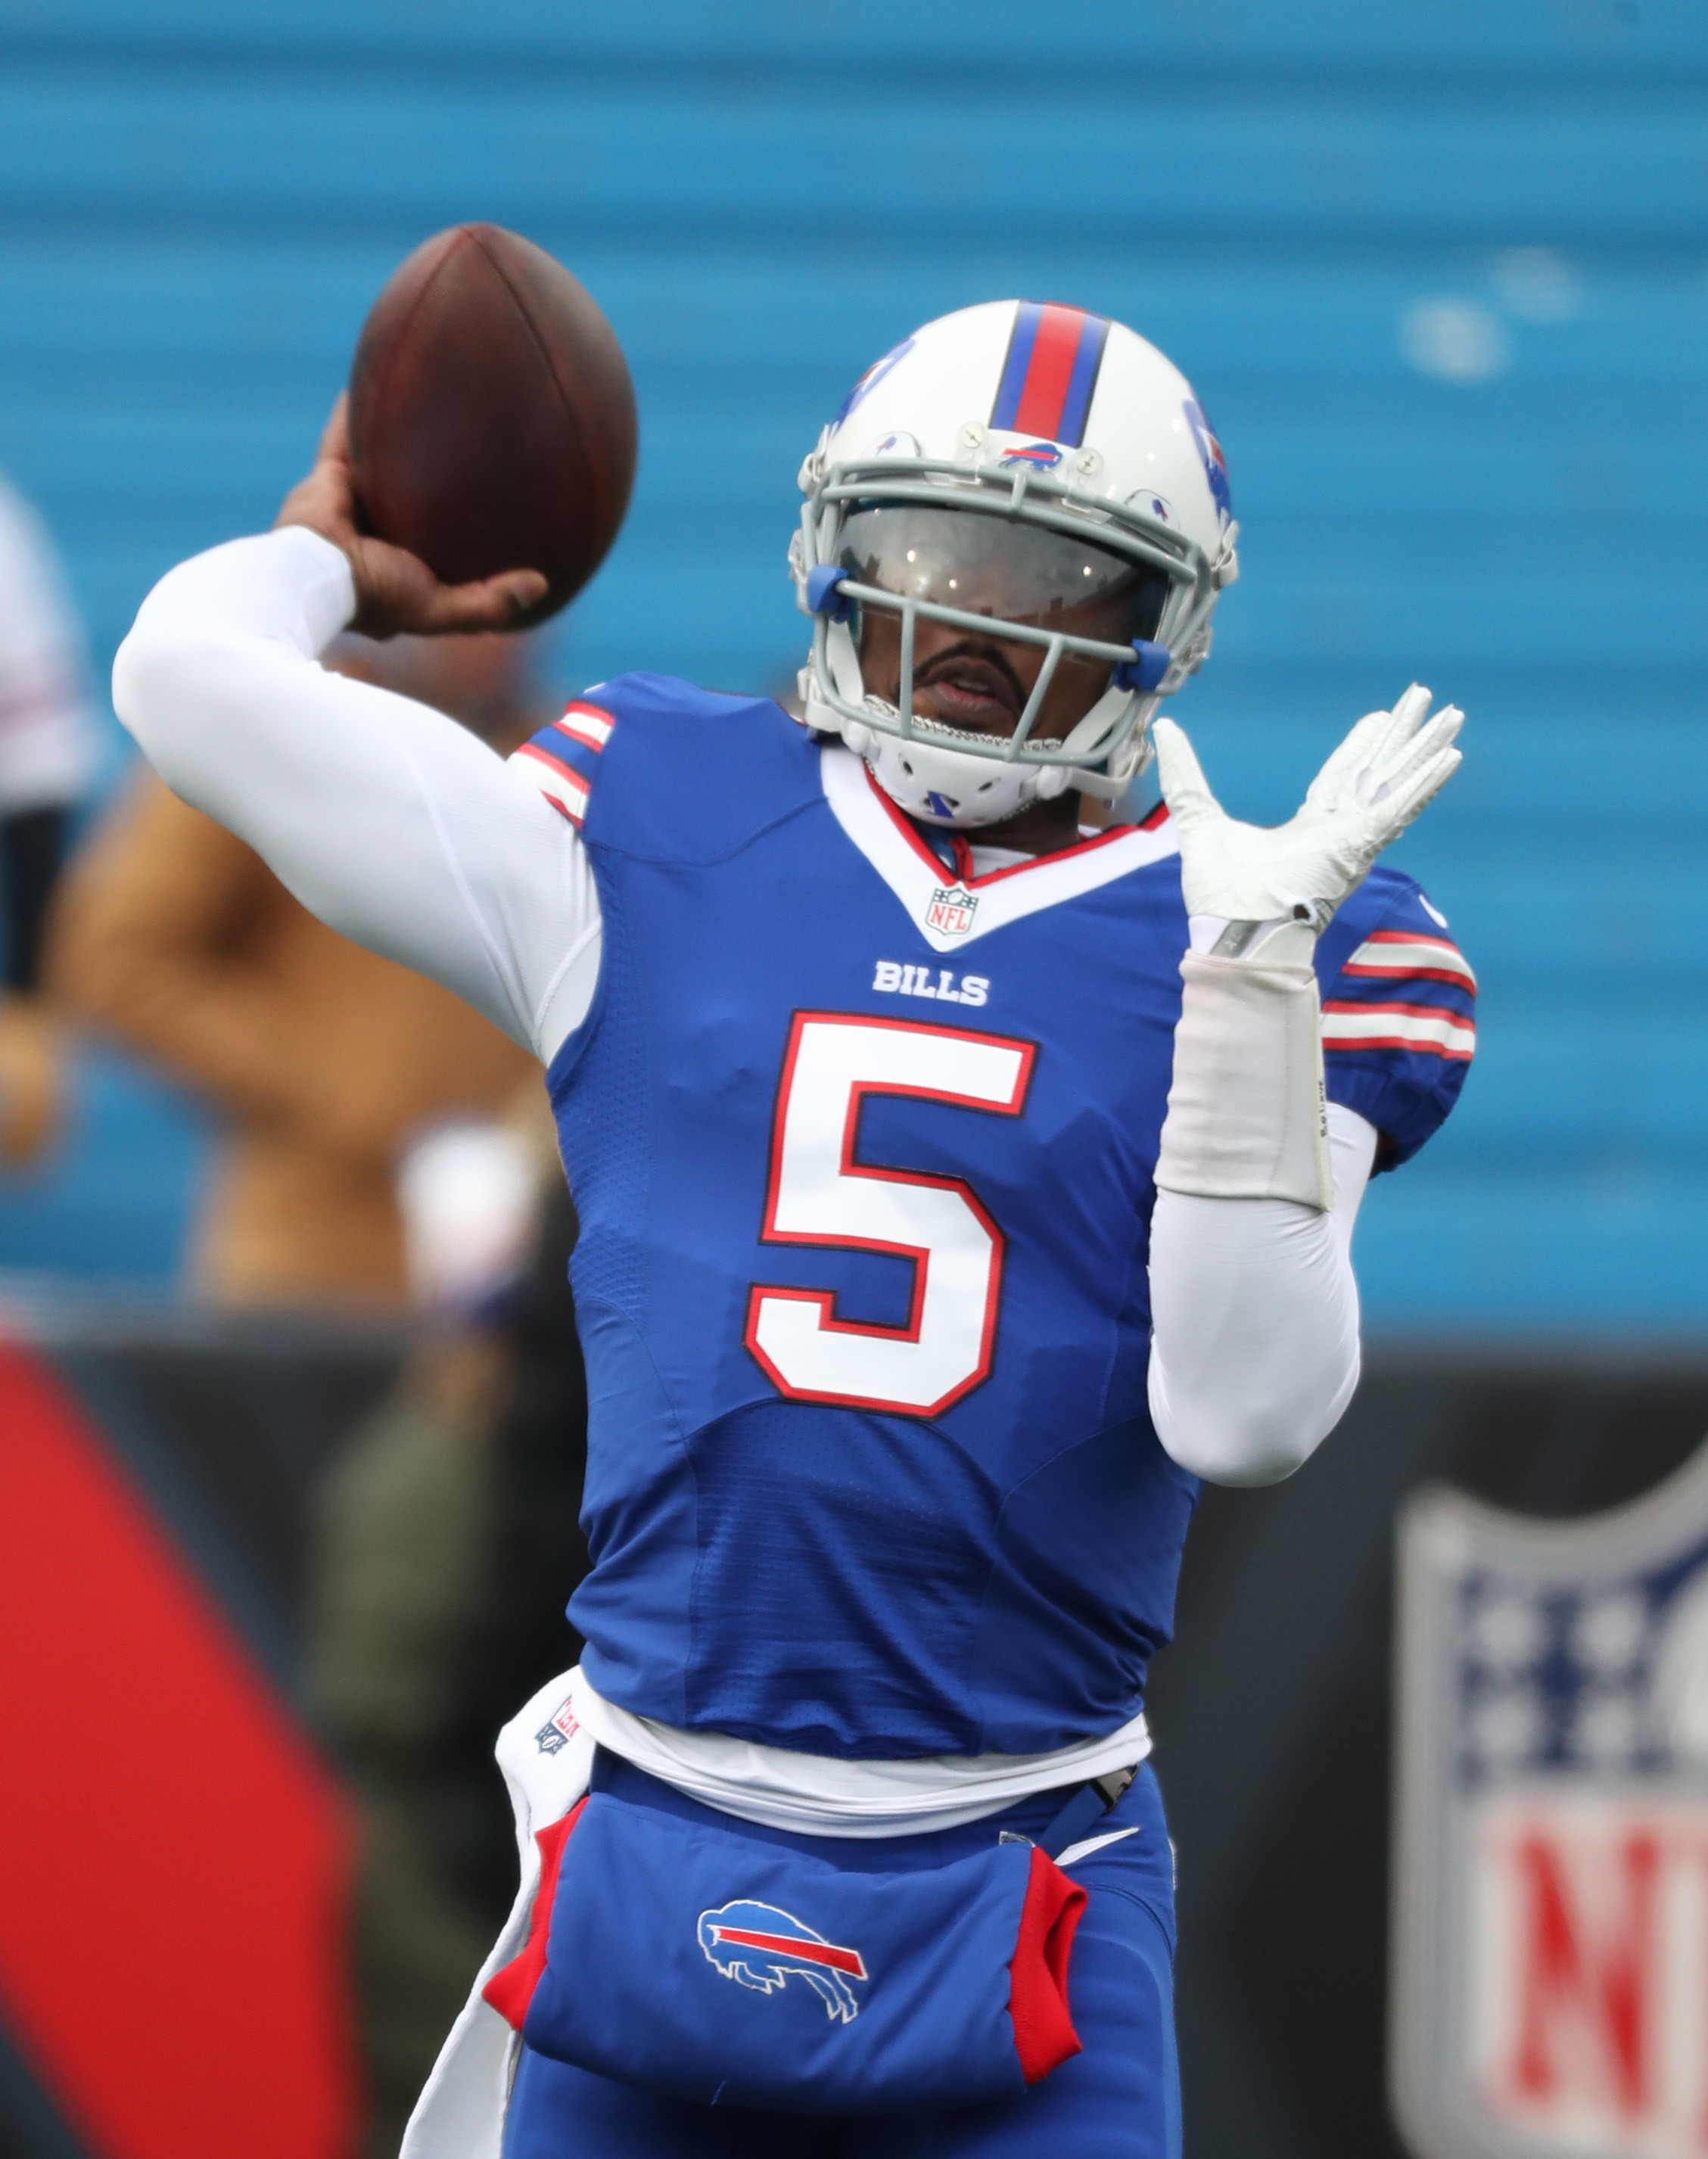 Tyrod Taylor's long-term status with the Bills remains in question. (James P. McCoy/Buffalo News)